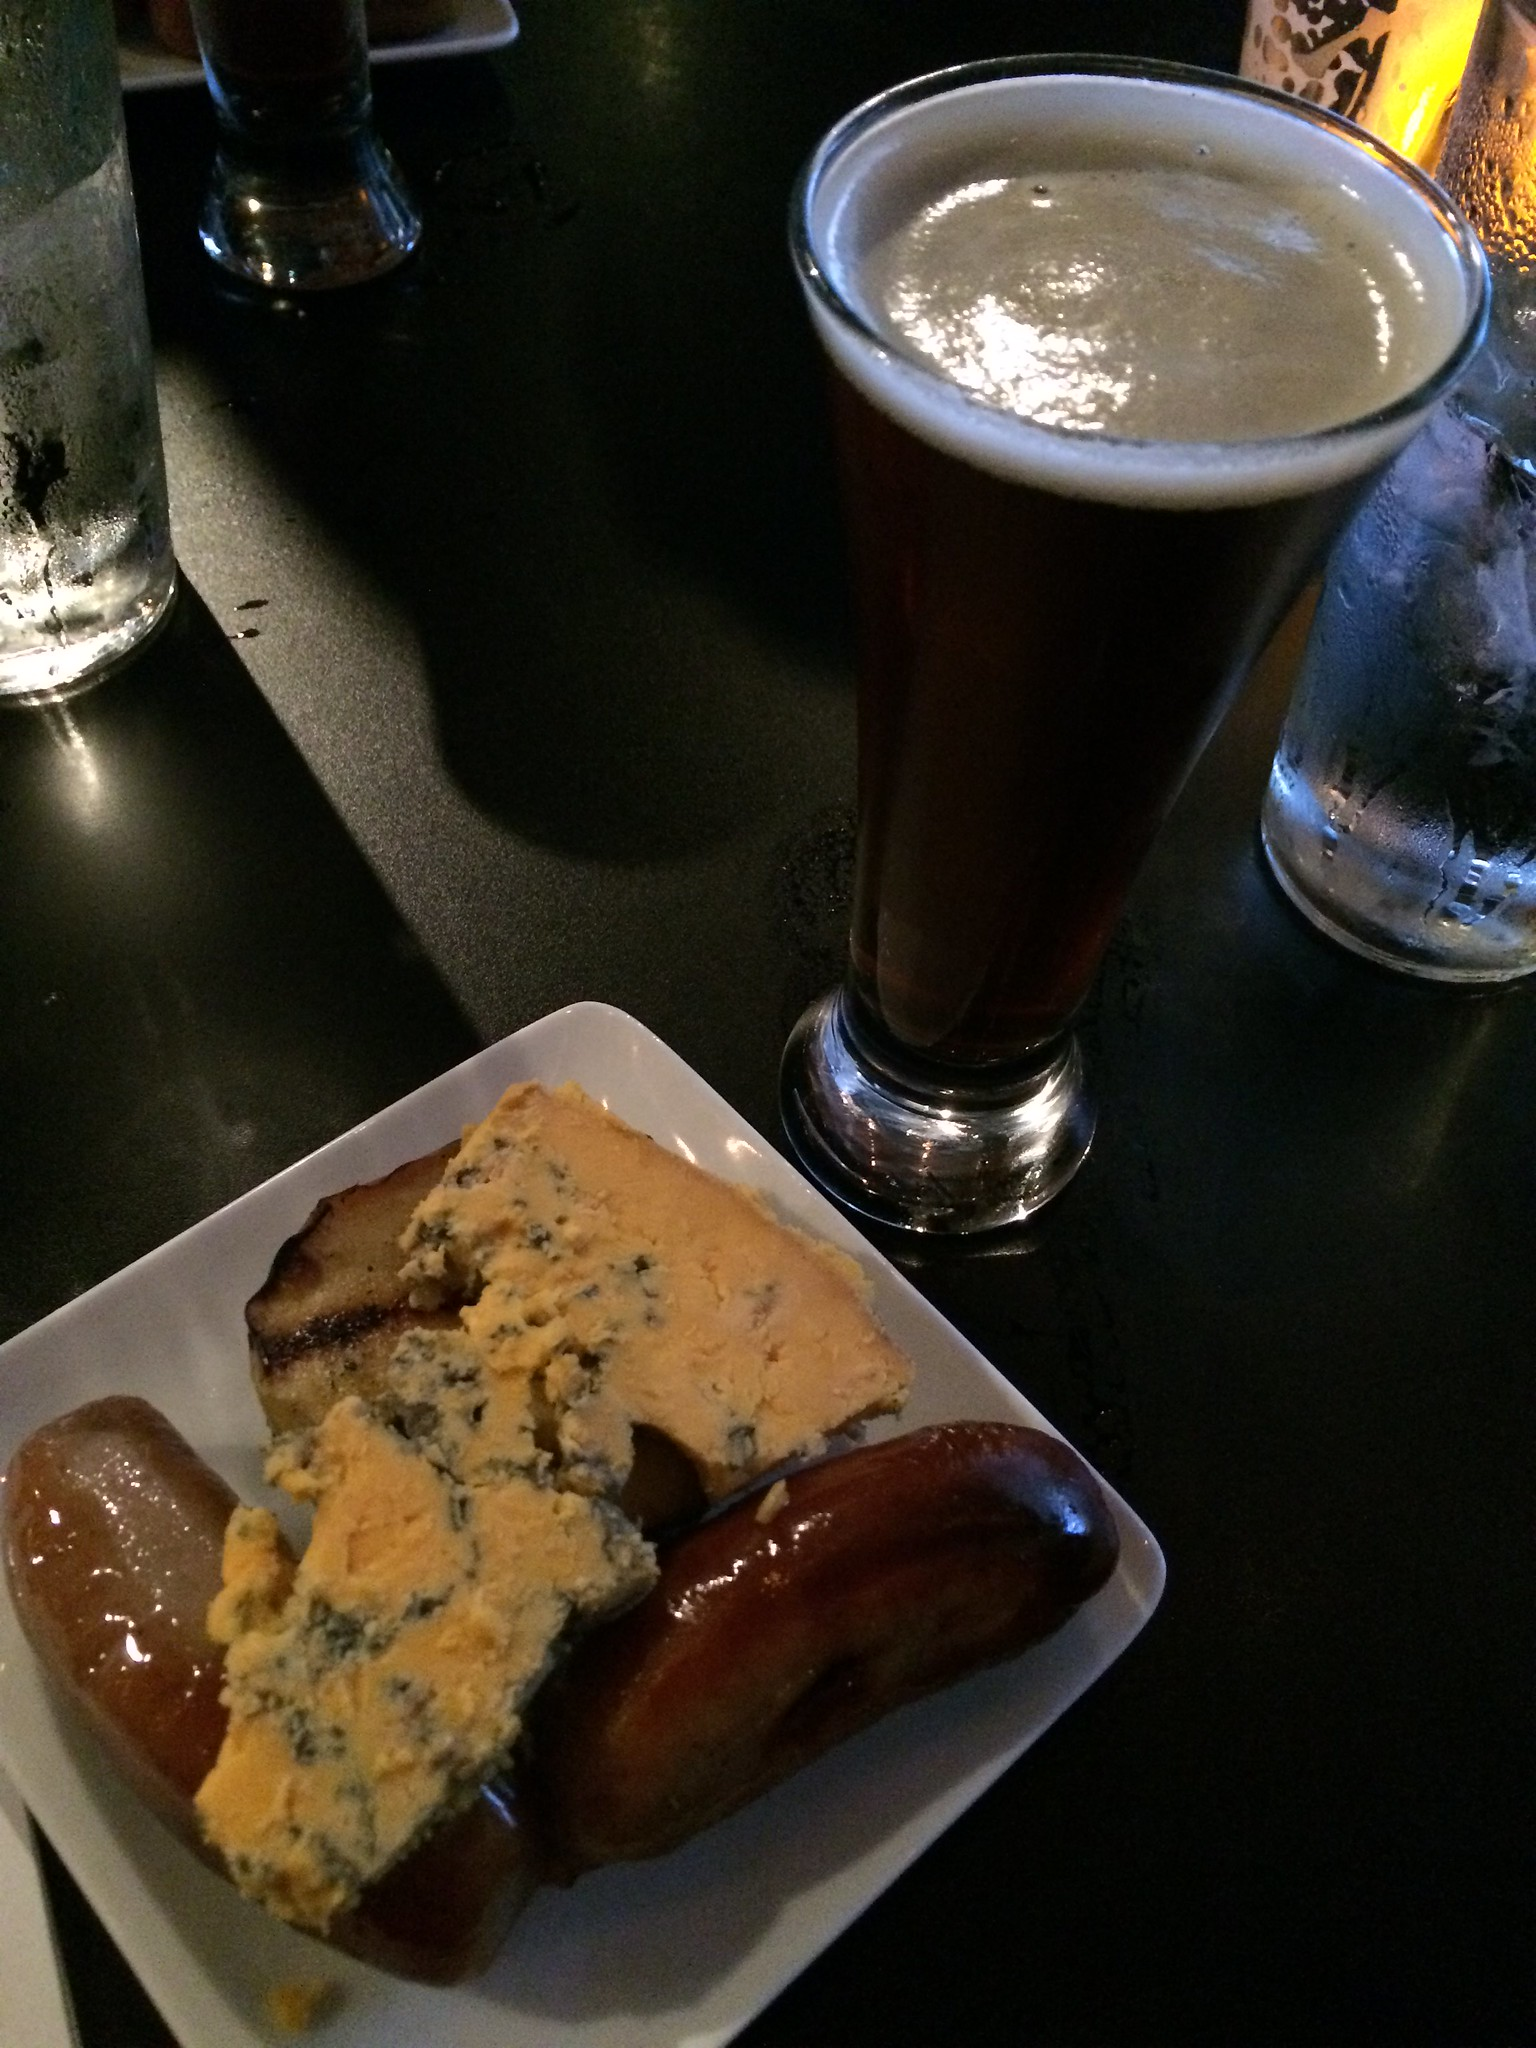 West Virginia Craft Beer and Cheese dinner